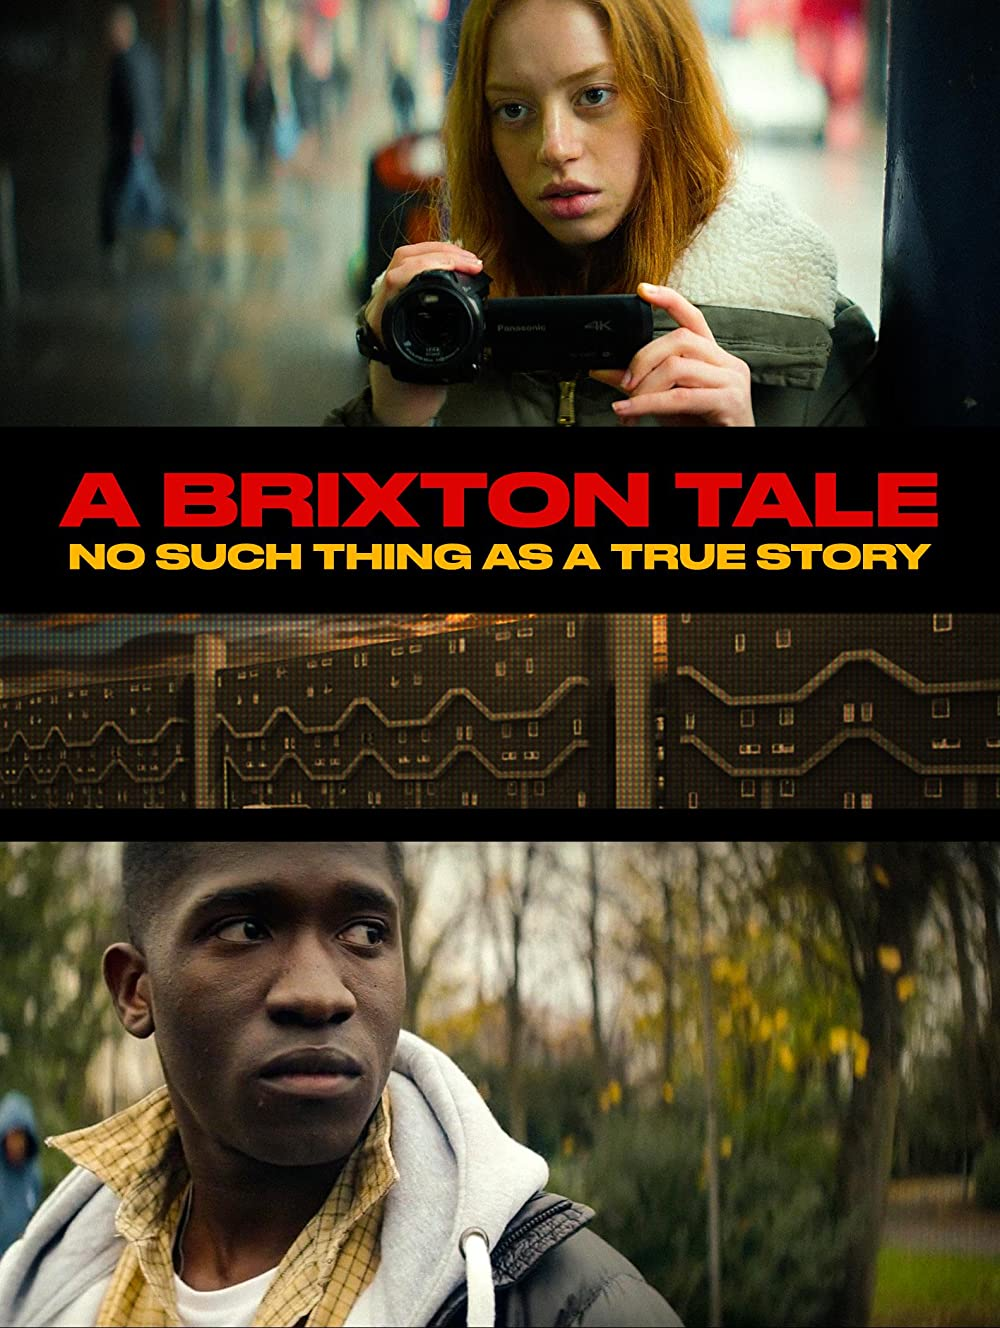 brixtontale_poster